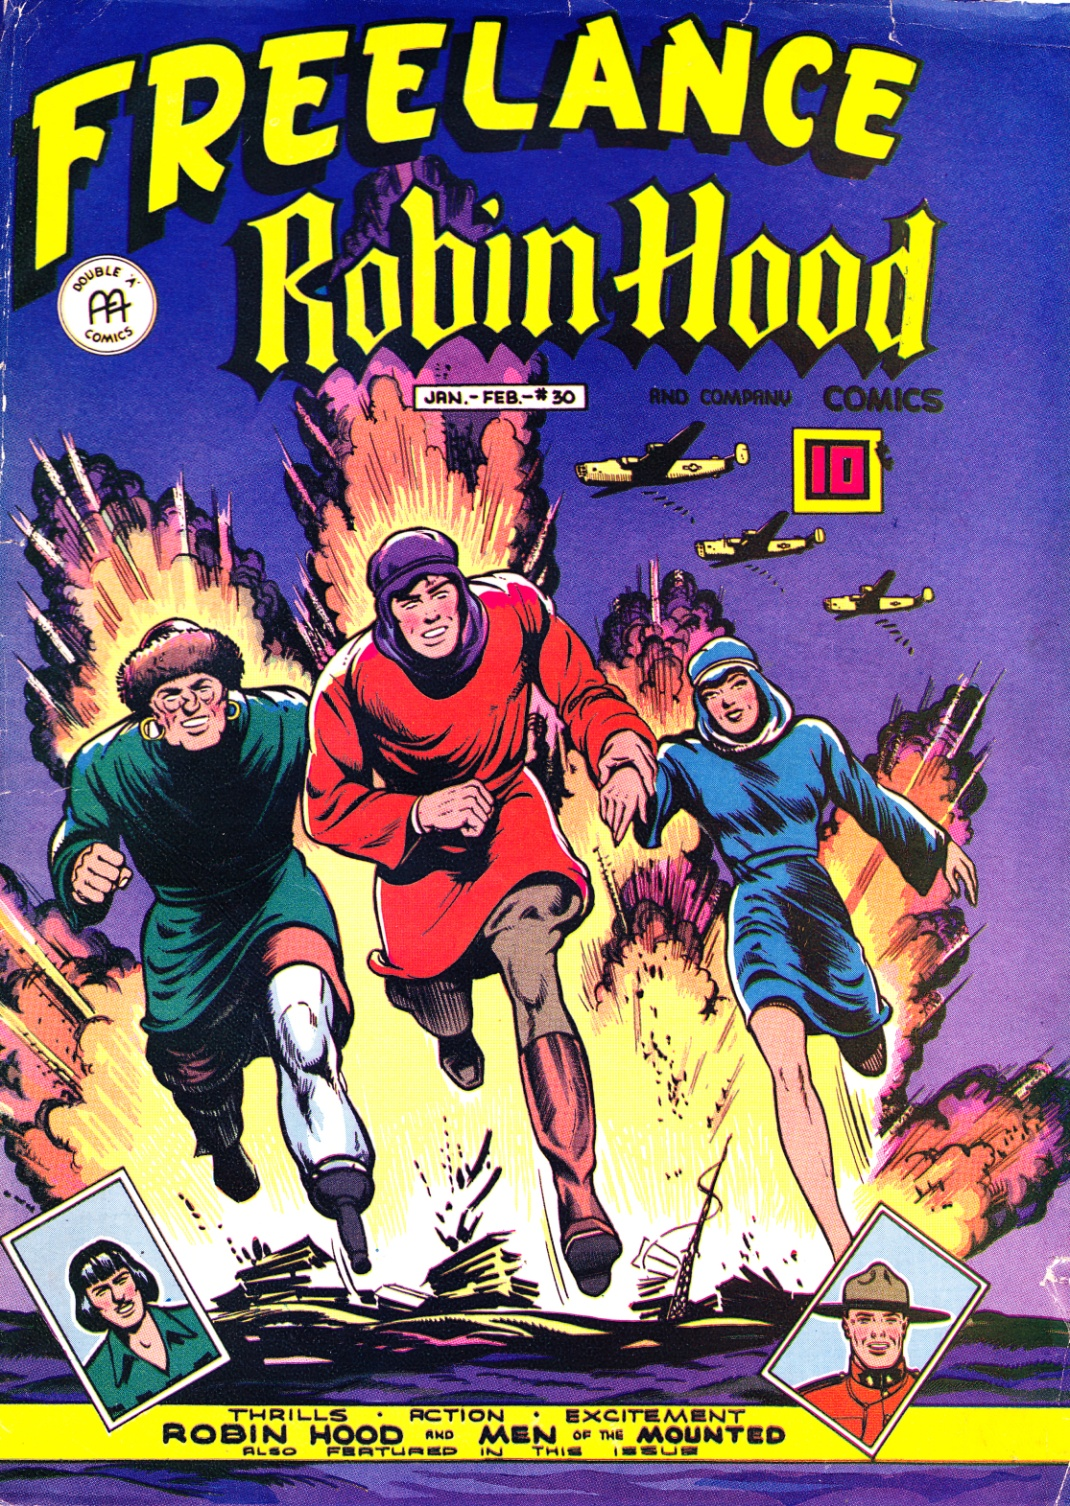 C:\Users\Robert\Documents\CARTOONING ILLUSTRATION ANIMATION\IMAGE CARTOON\IMAGE CARTOON F\FREELANCE Freelance Robin Hood, 3-30 Jan-Feb 1946 fc.jpg